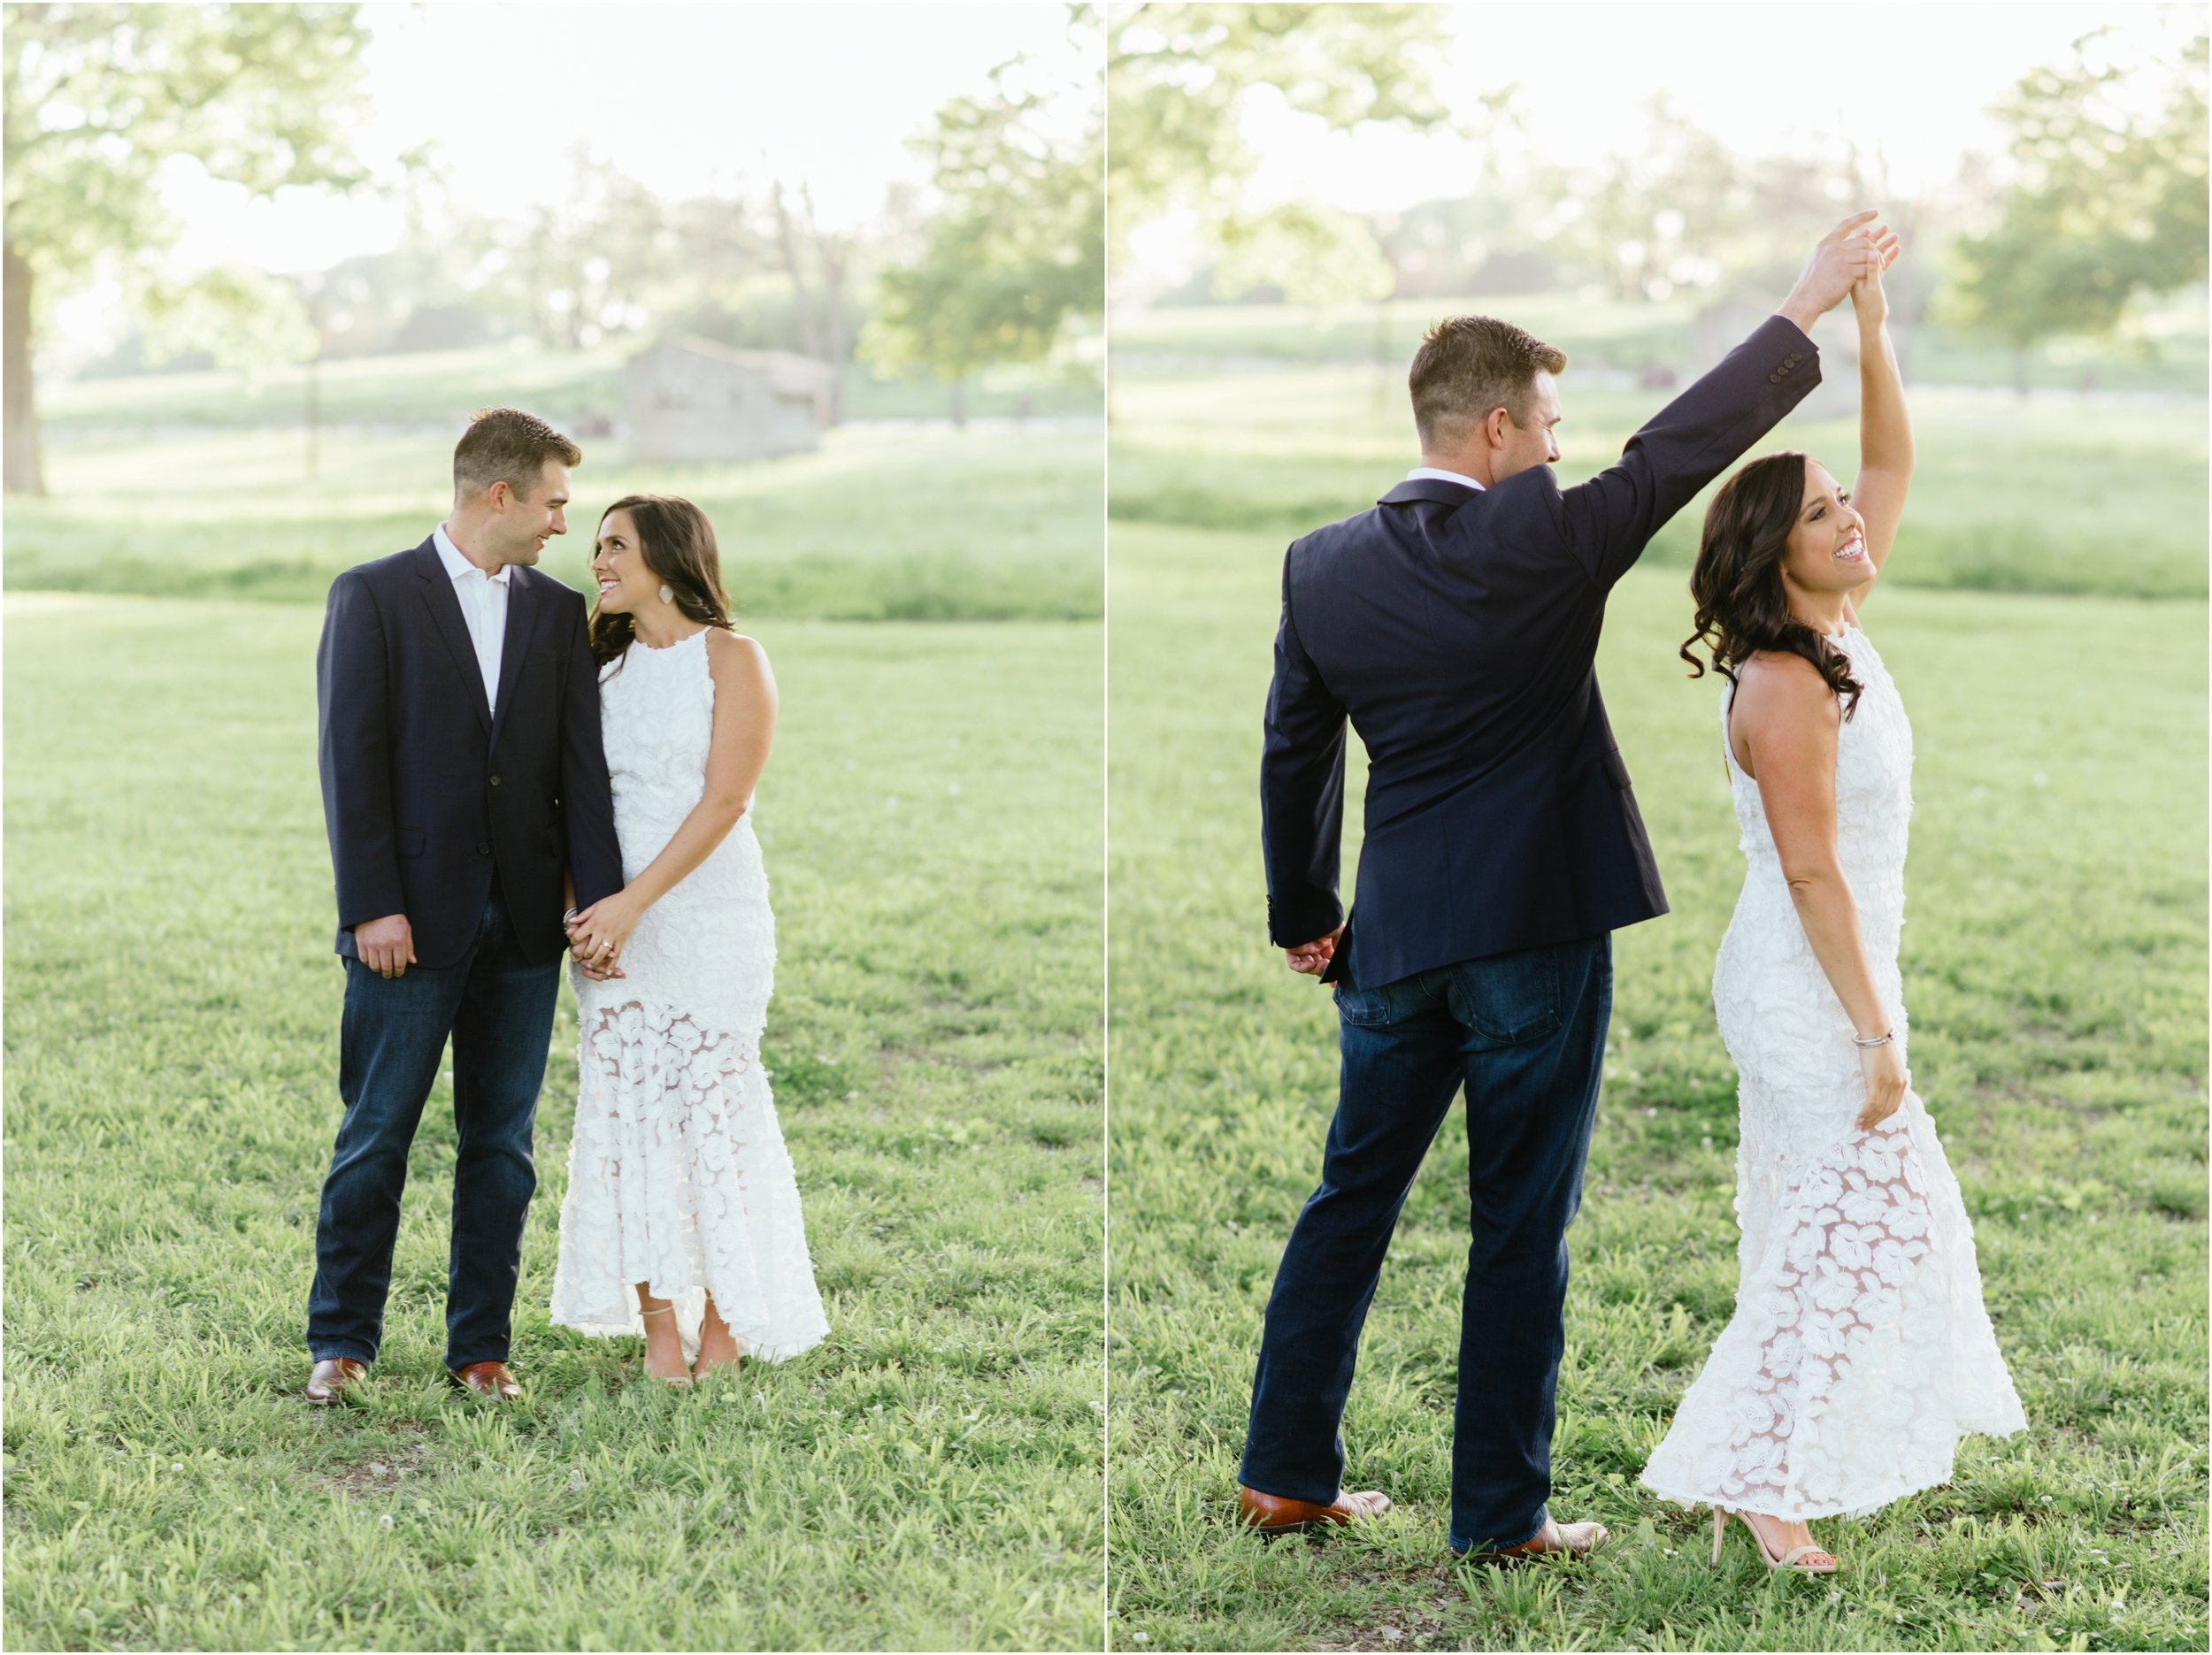 dallasweddingphotographer_texasweddingphotographer_texasweddingphotographers_dallasweddingphotographer_mattandjulieweddings_0855.jpg